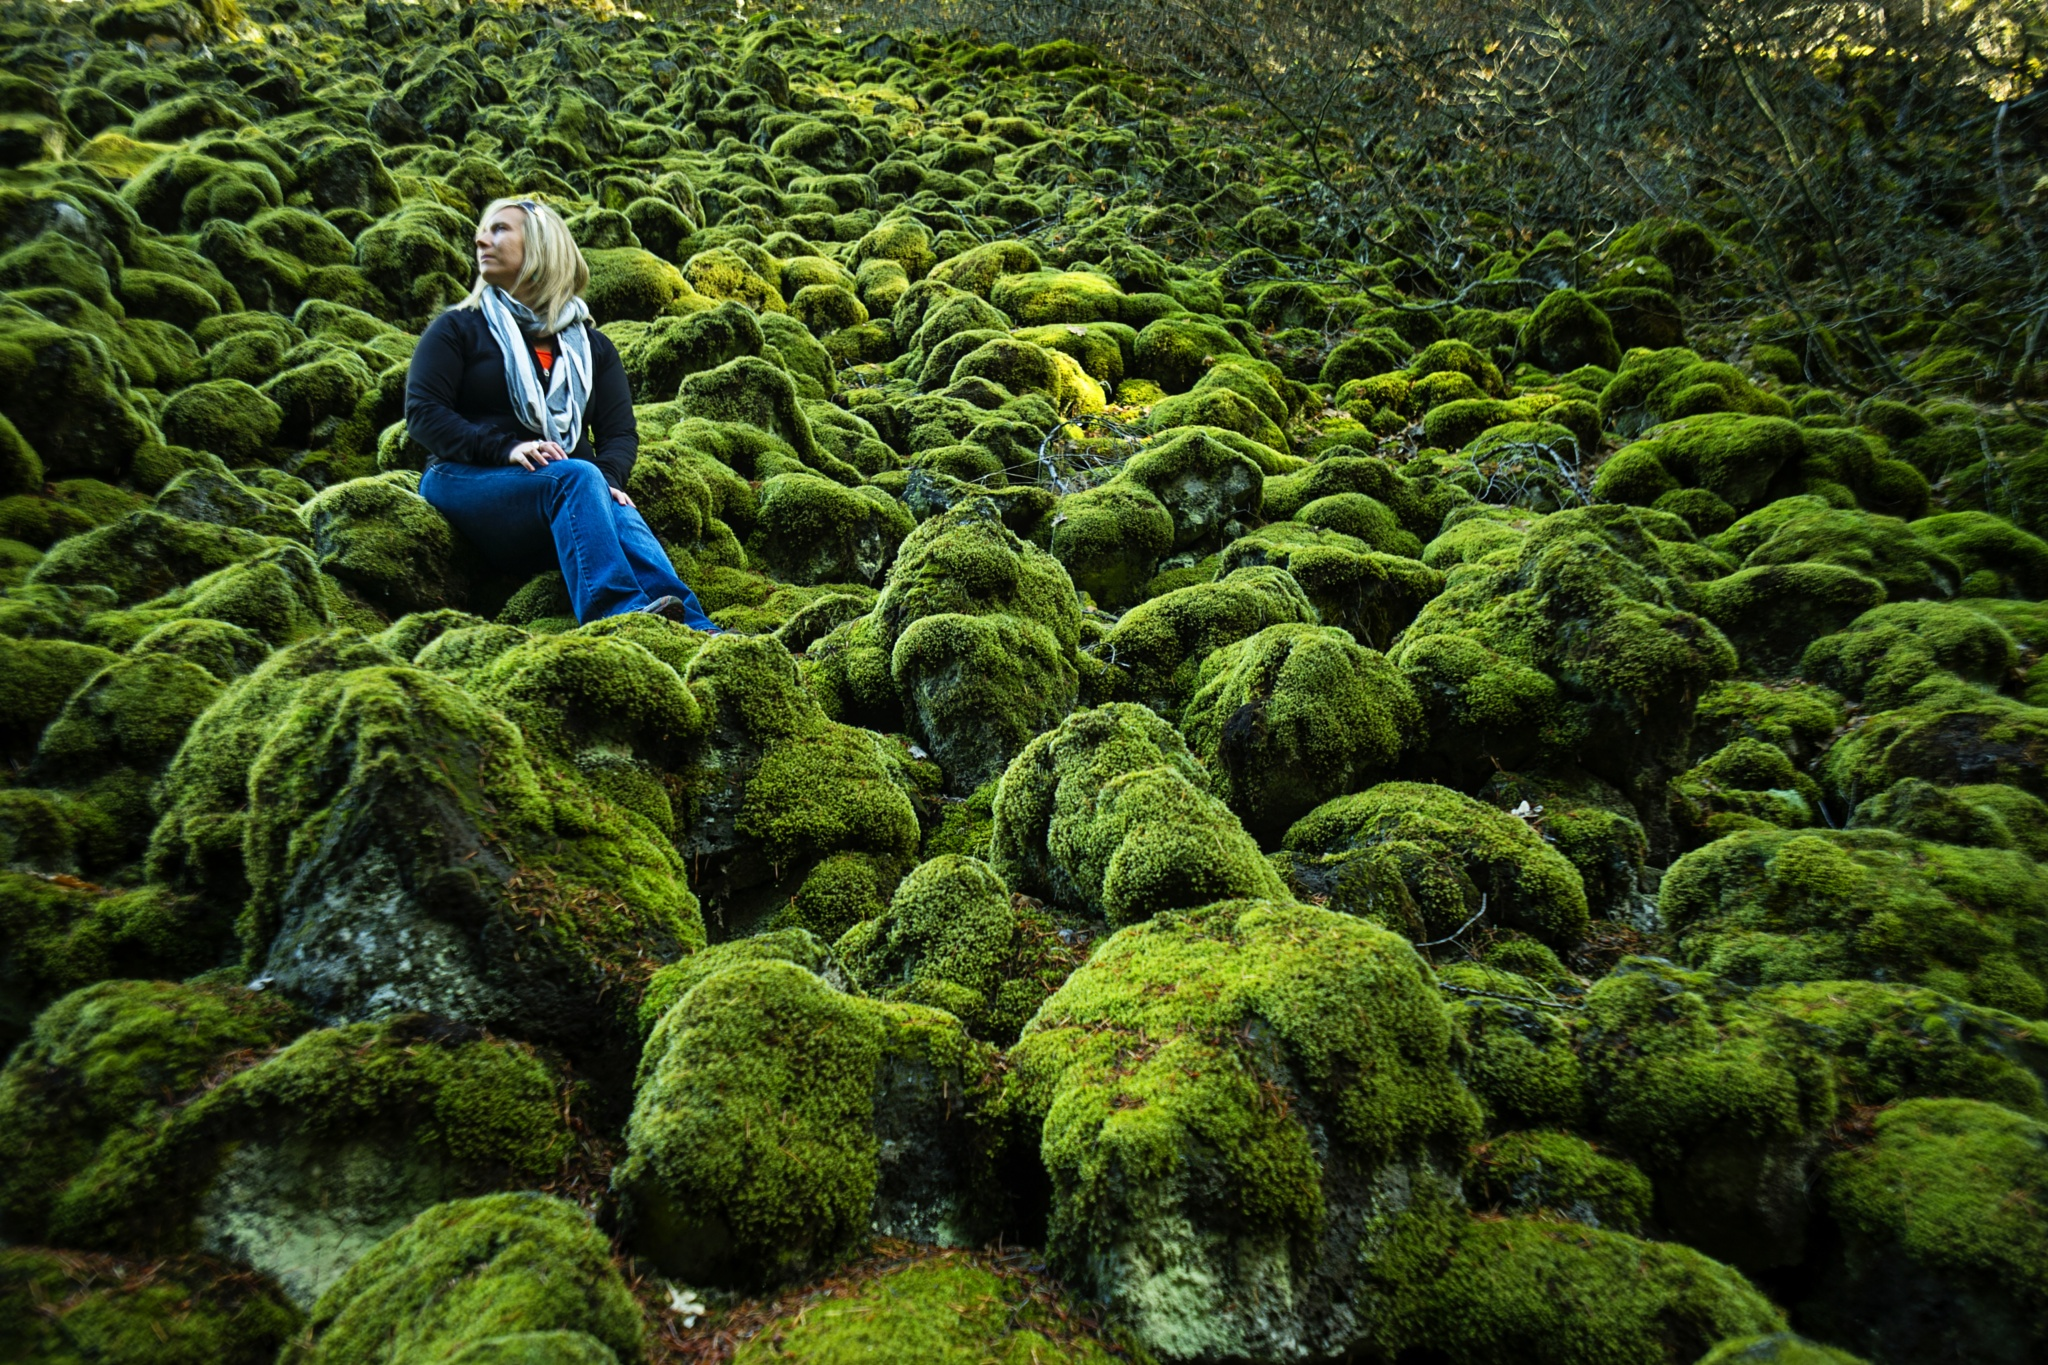 Moss by stephen.brown.5682